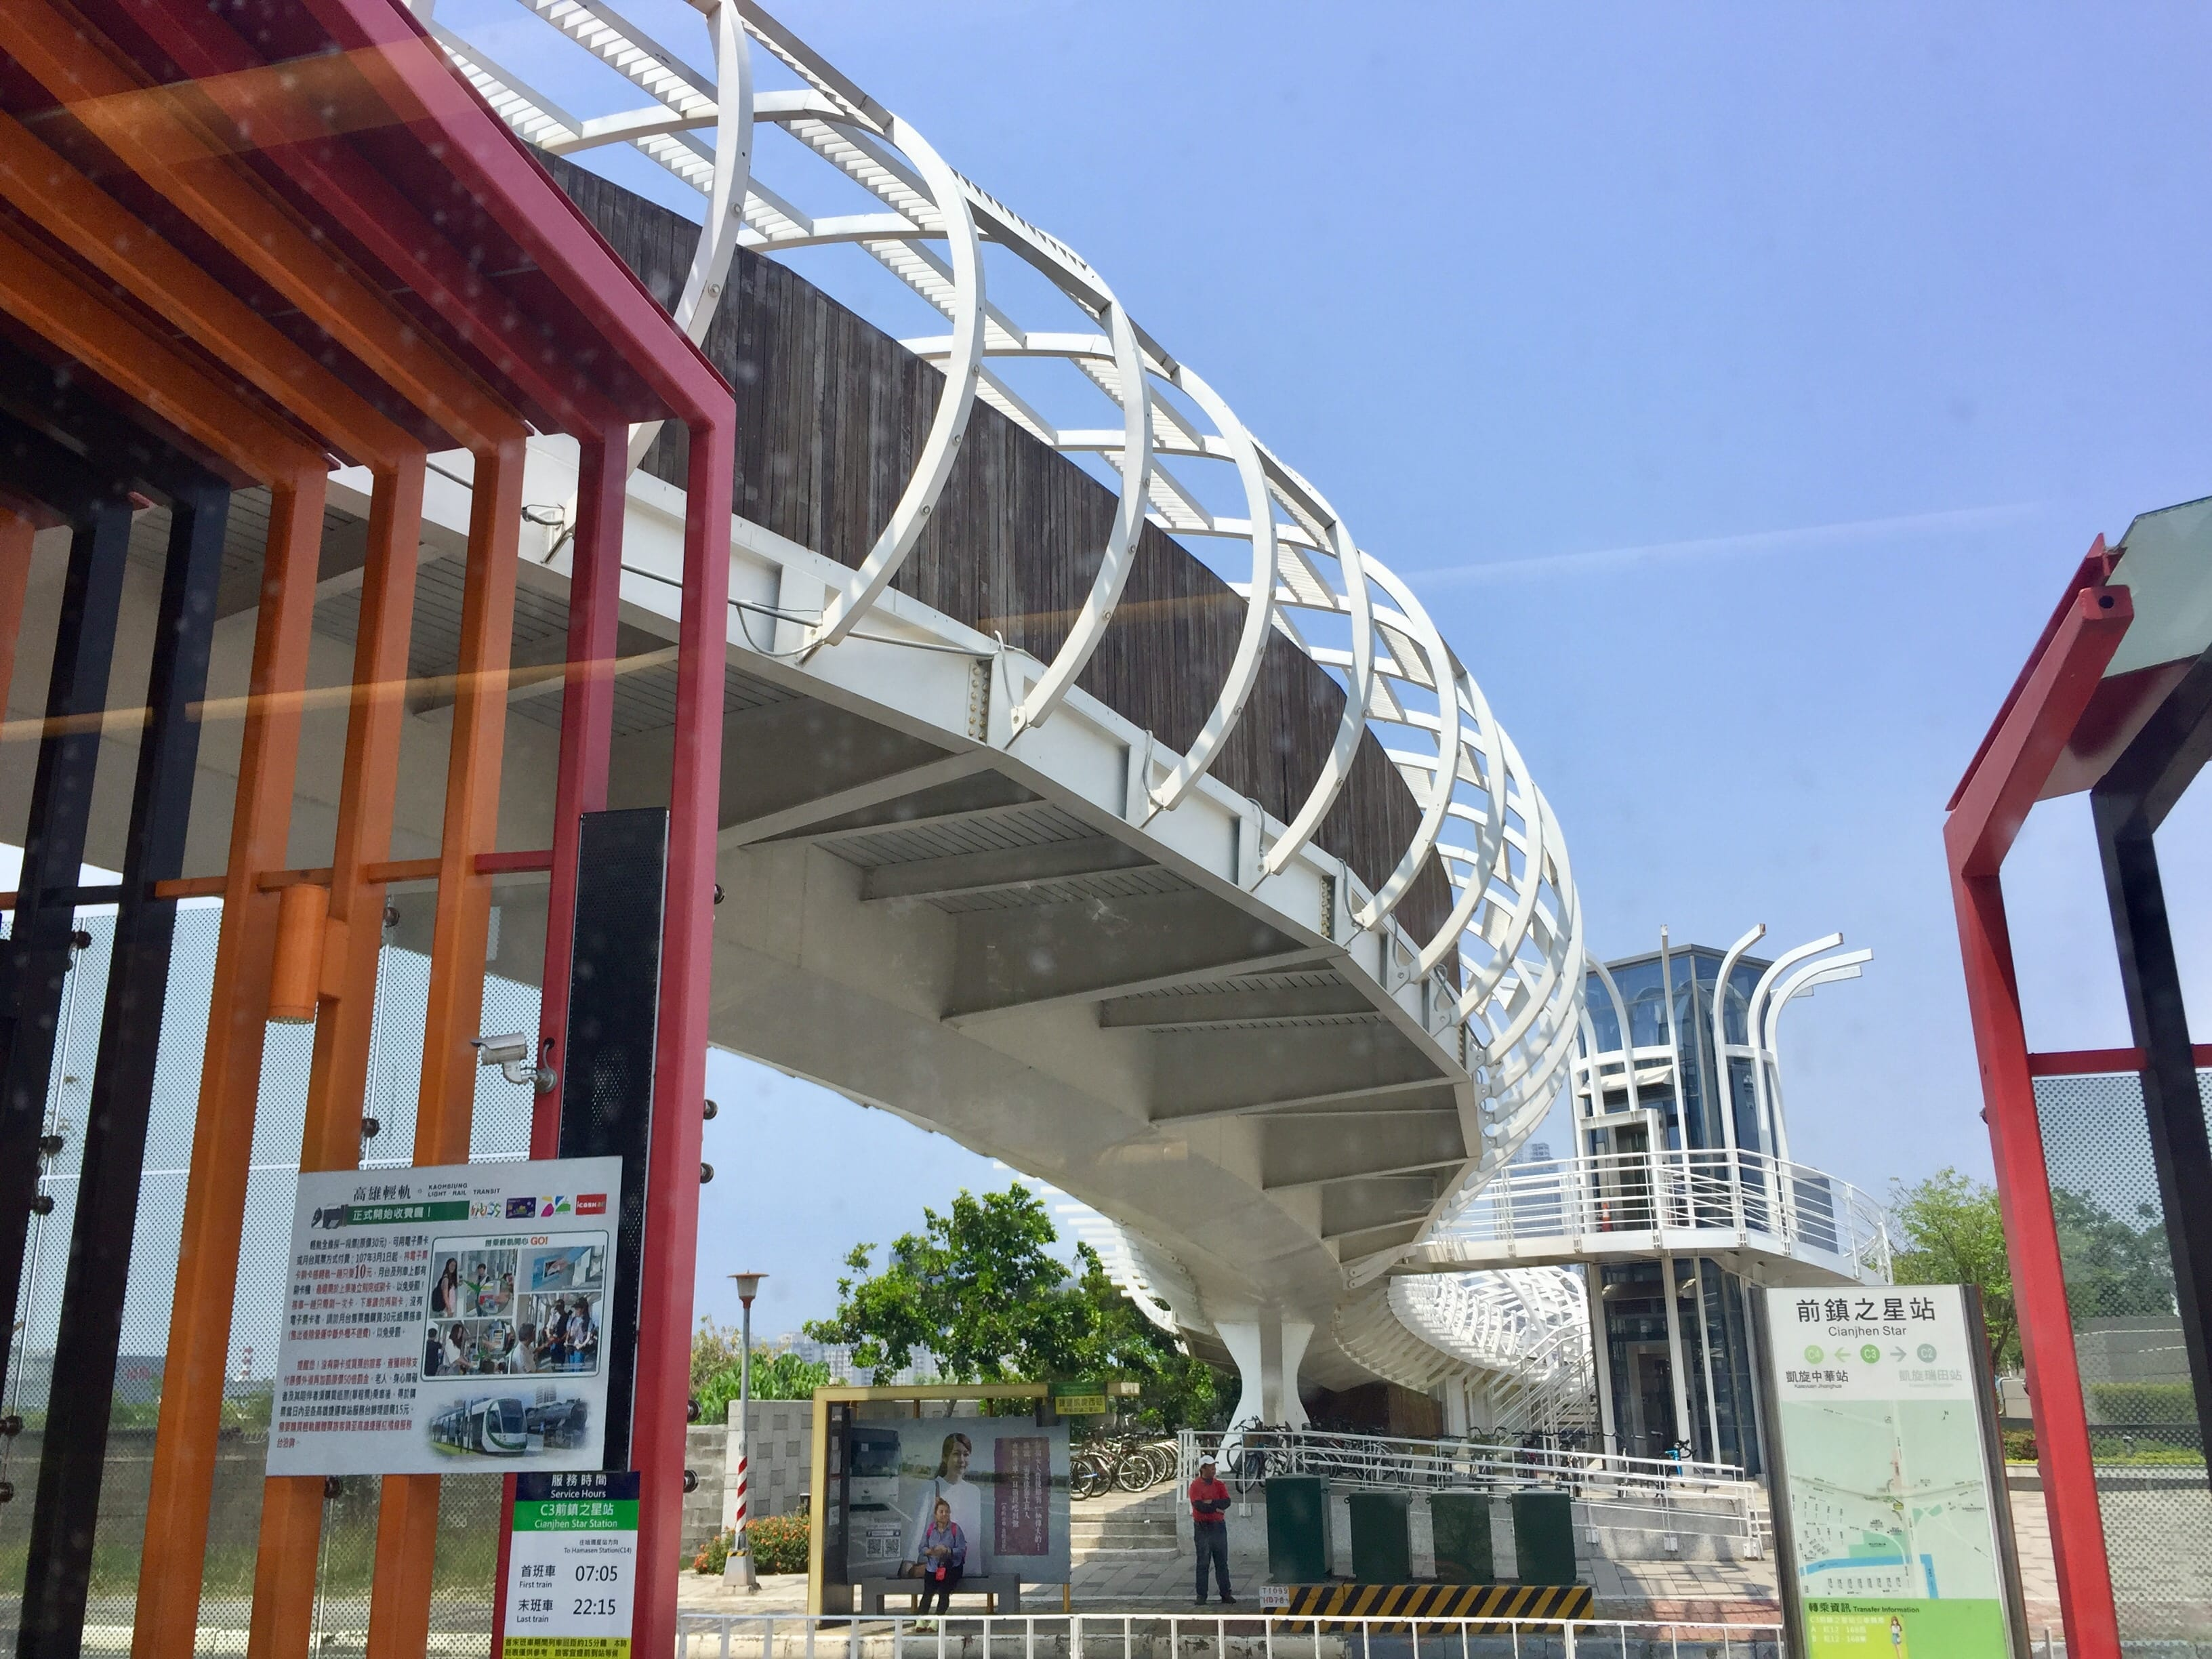 Cianjhen Star LRT Station with the bike bridge in the background